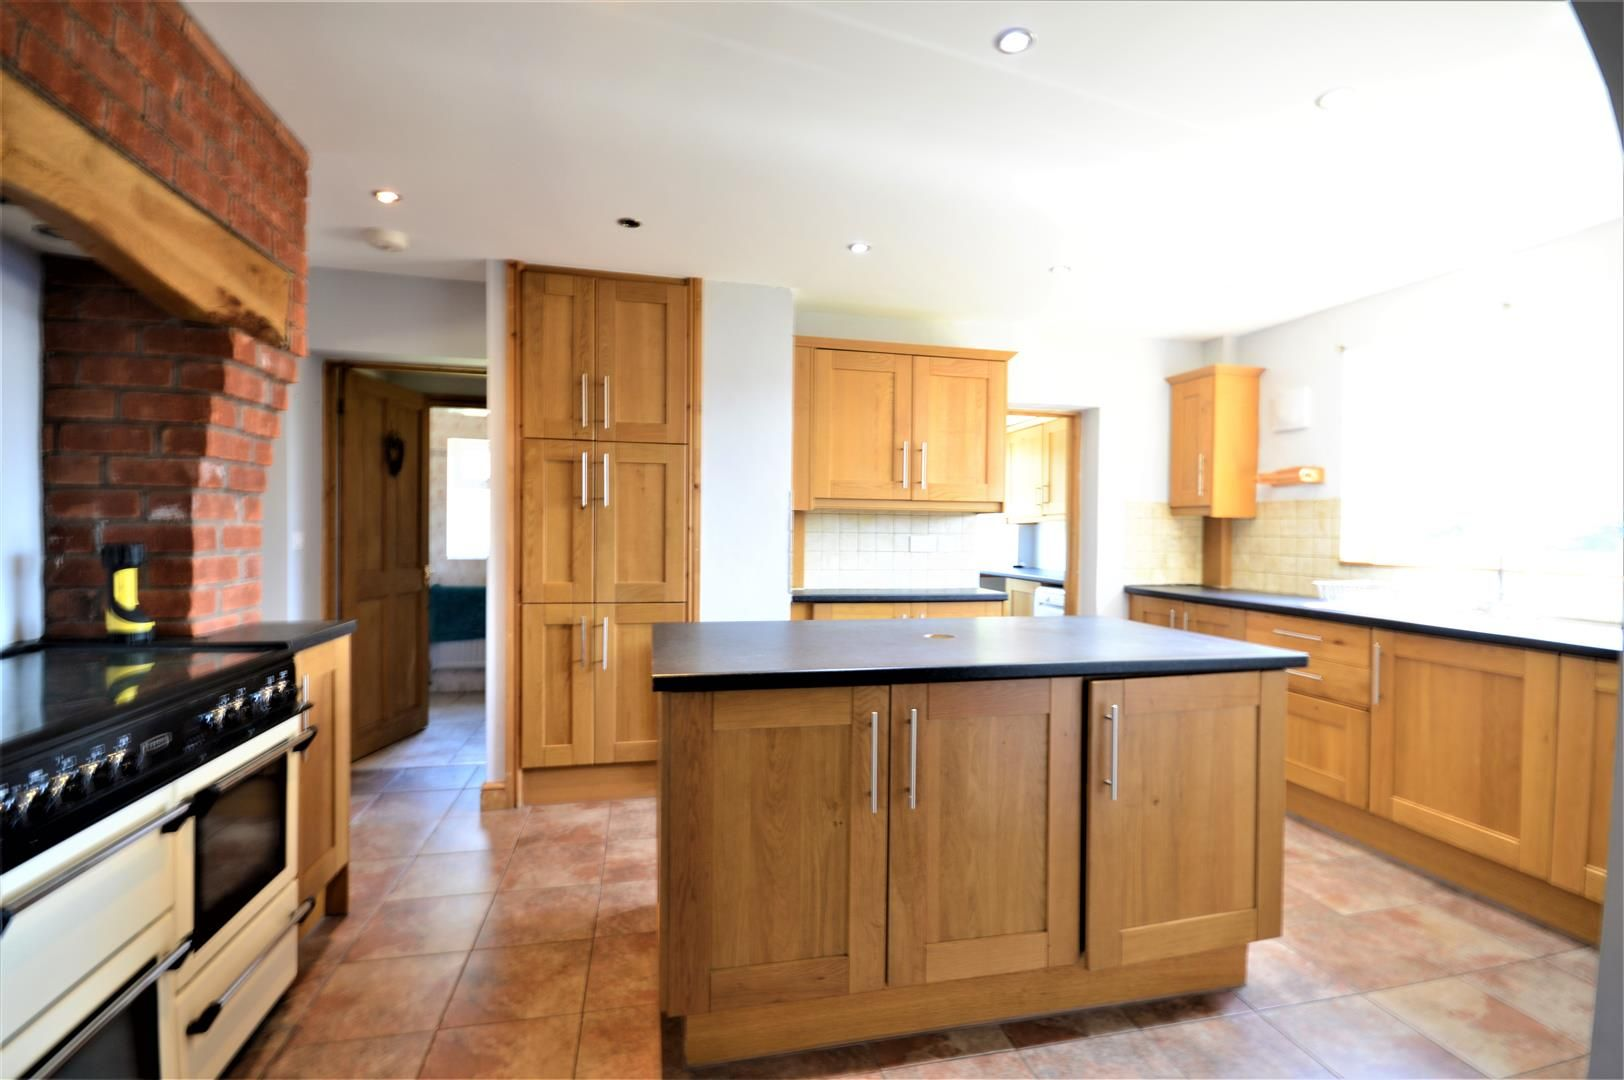 5 bed detached for sale in Sutton St. Nicholas  - Property Image 10